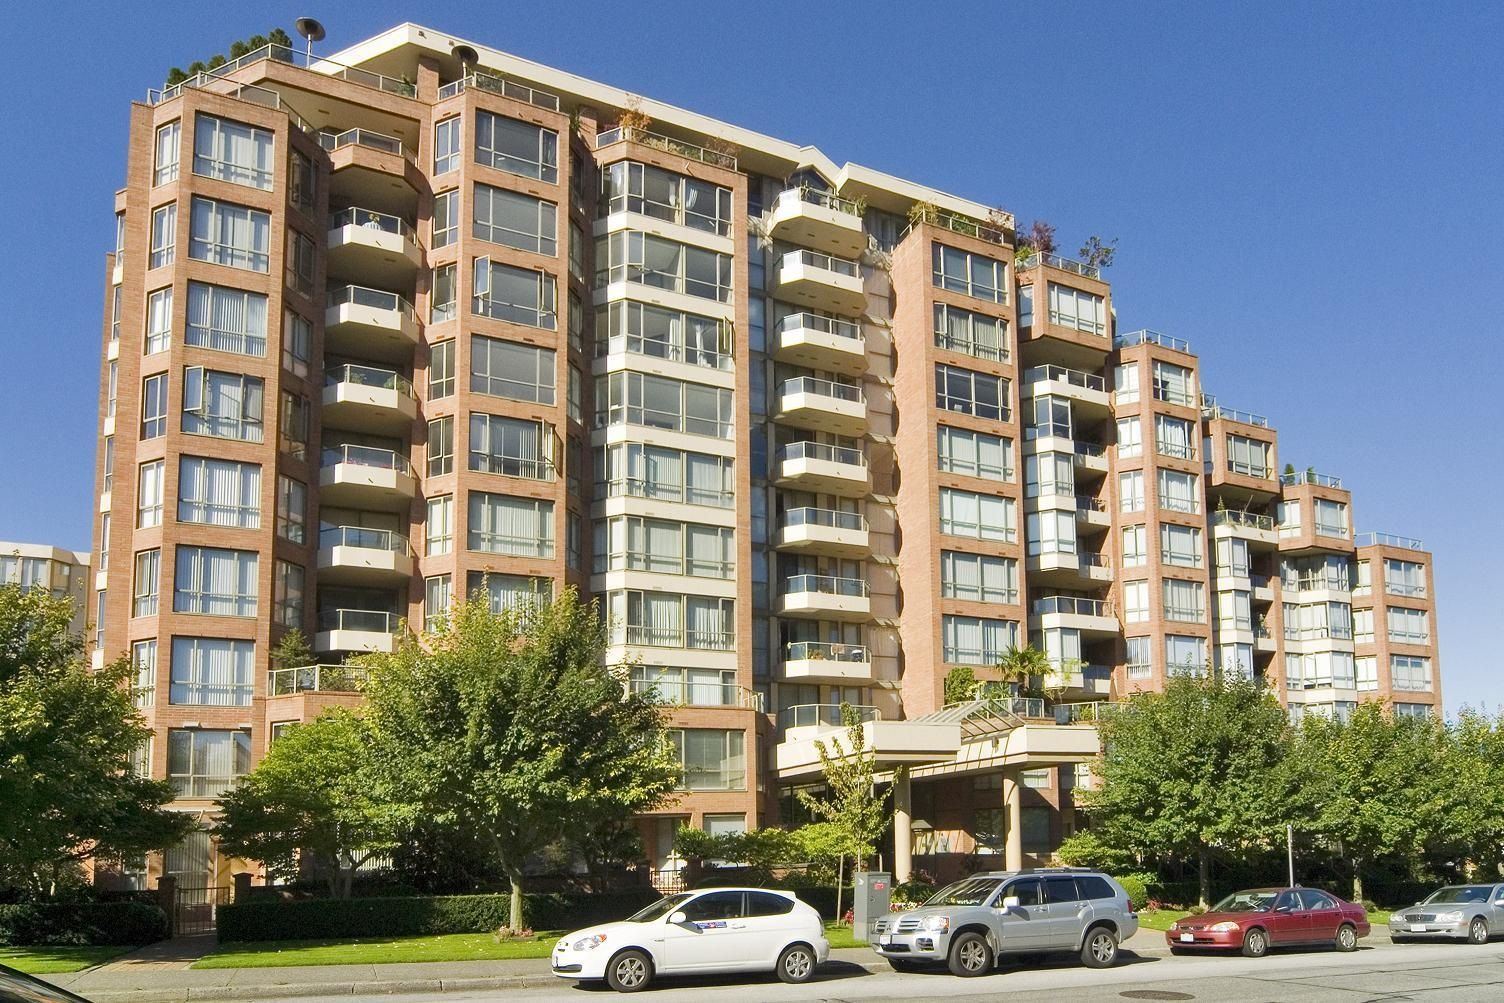 Main Photo: 3 2201 PINE STREET in Vancouver: Fairview VW Townhouse for sale (Vancouver West)  : MLS®# R2610918